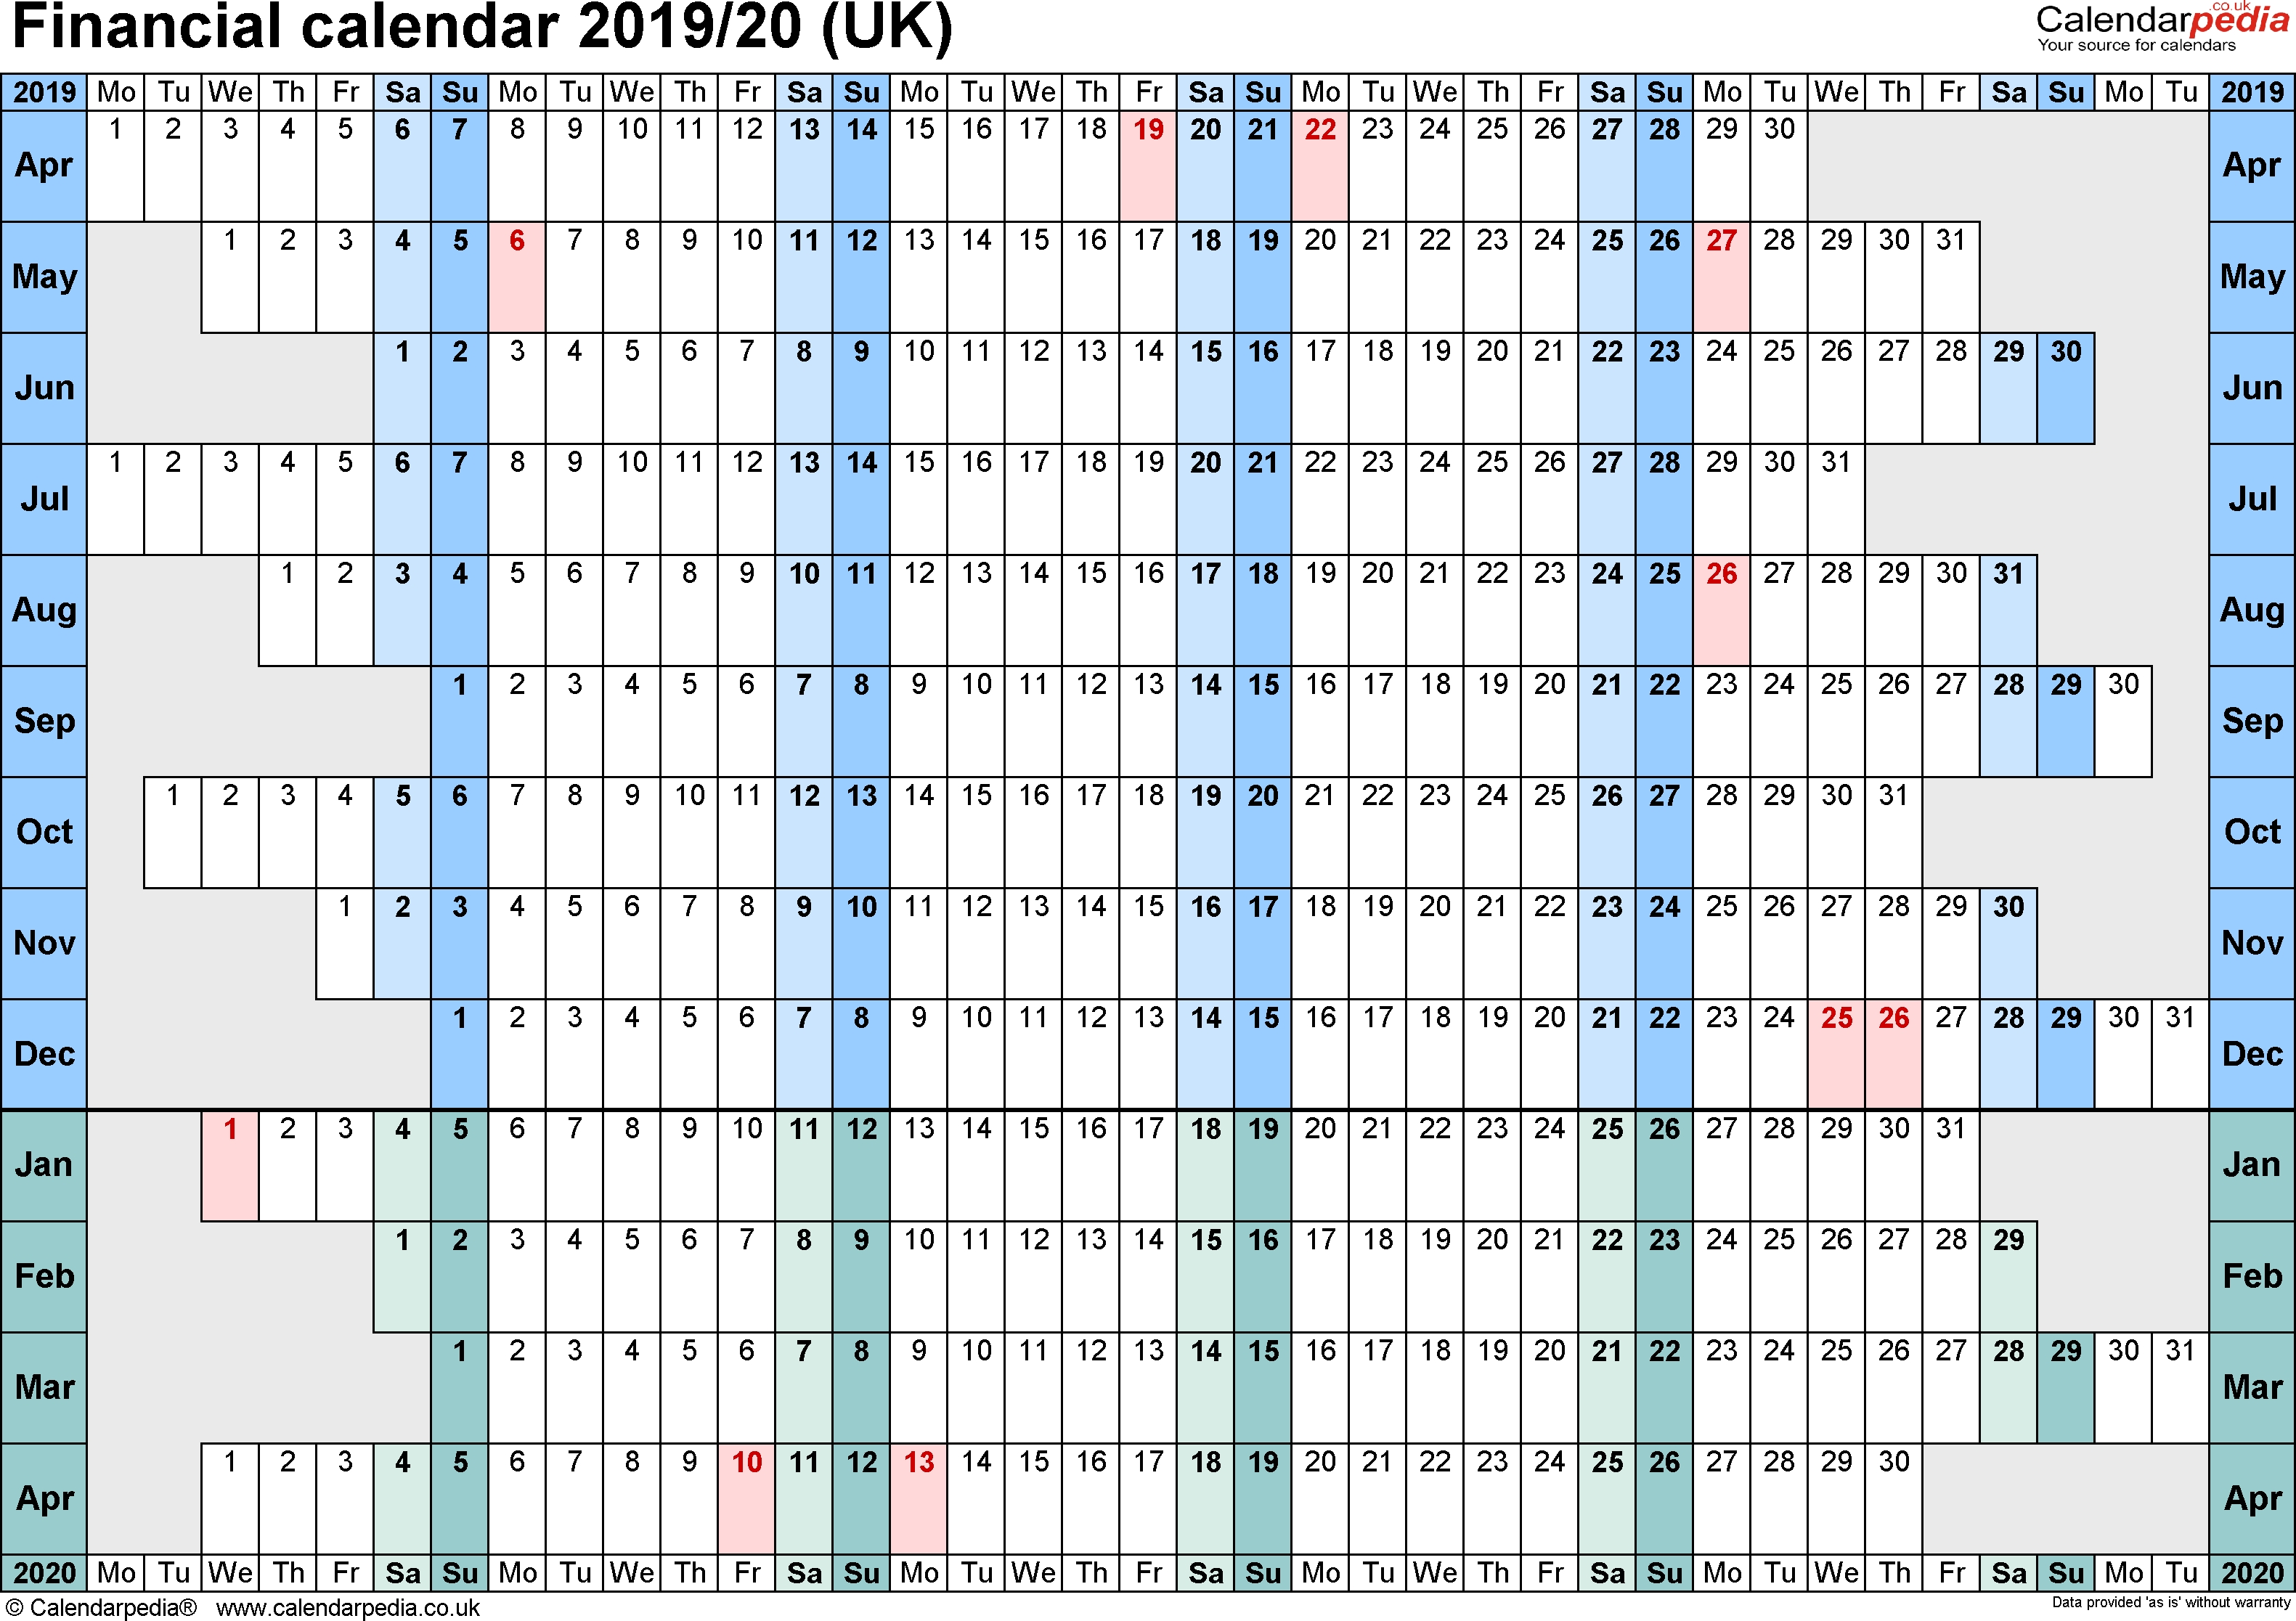 Financial Calendars 2019/20 (Uk) In Pdf Format 4 Week Period Calendar 2019